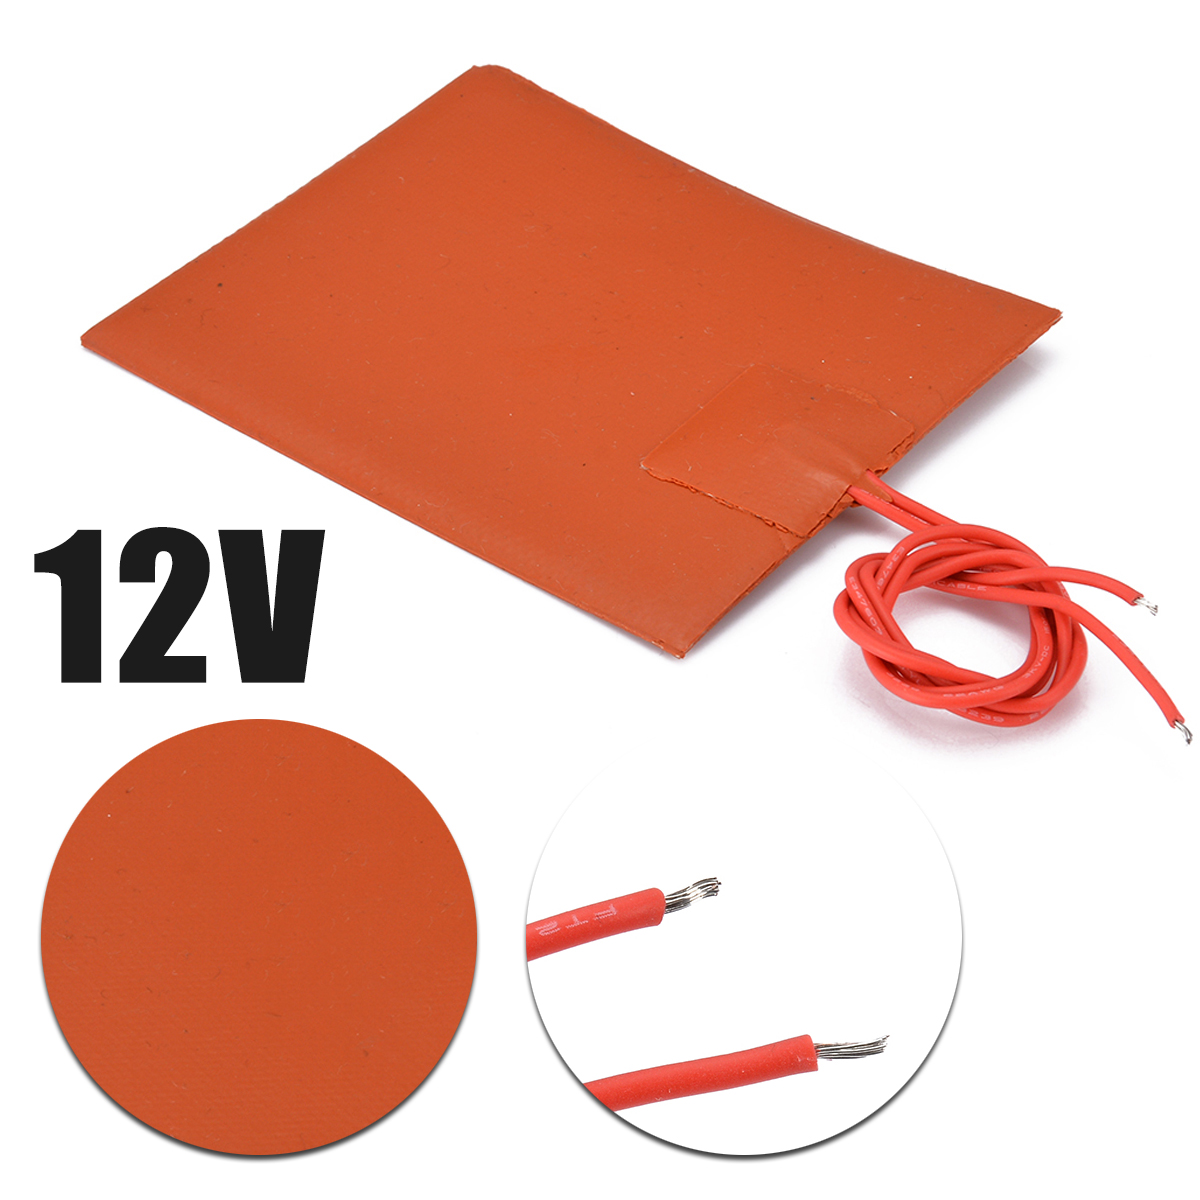 Mayitr 80x100mm 12V DC 20W Flexible Waterproof Silicone Heater Bed Pad For 3D Printer Heat Bed Electric Pads Red